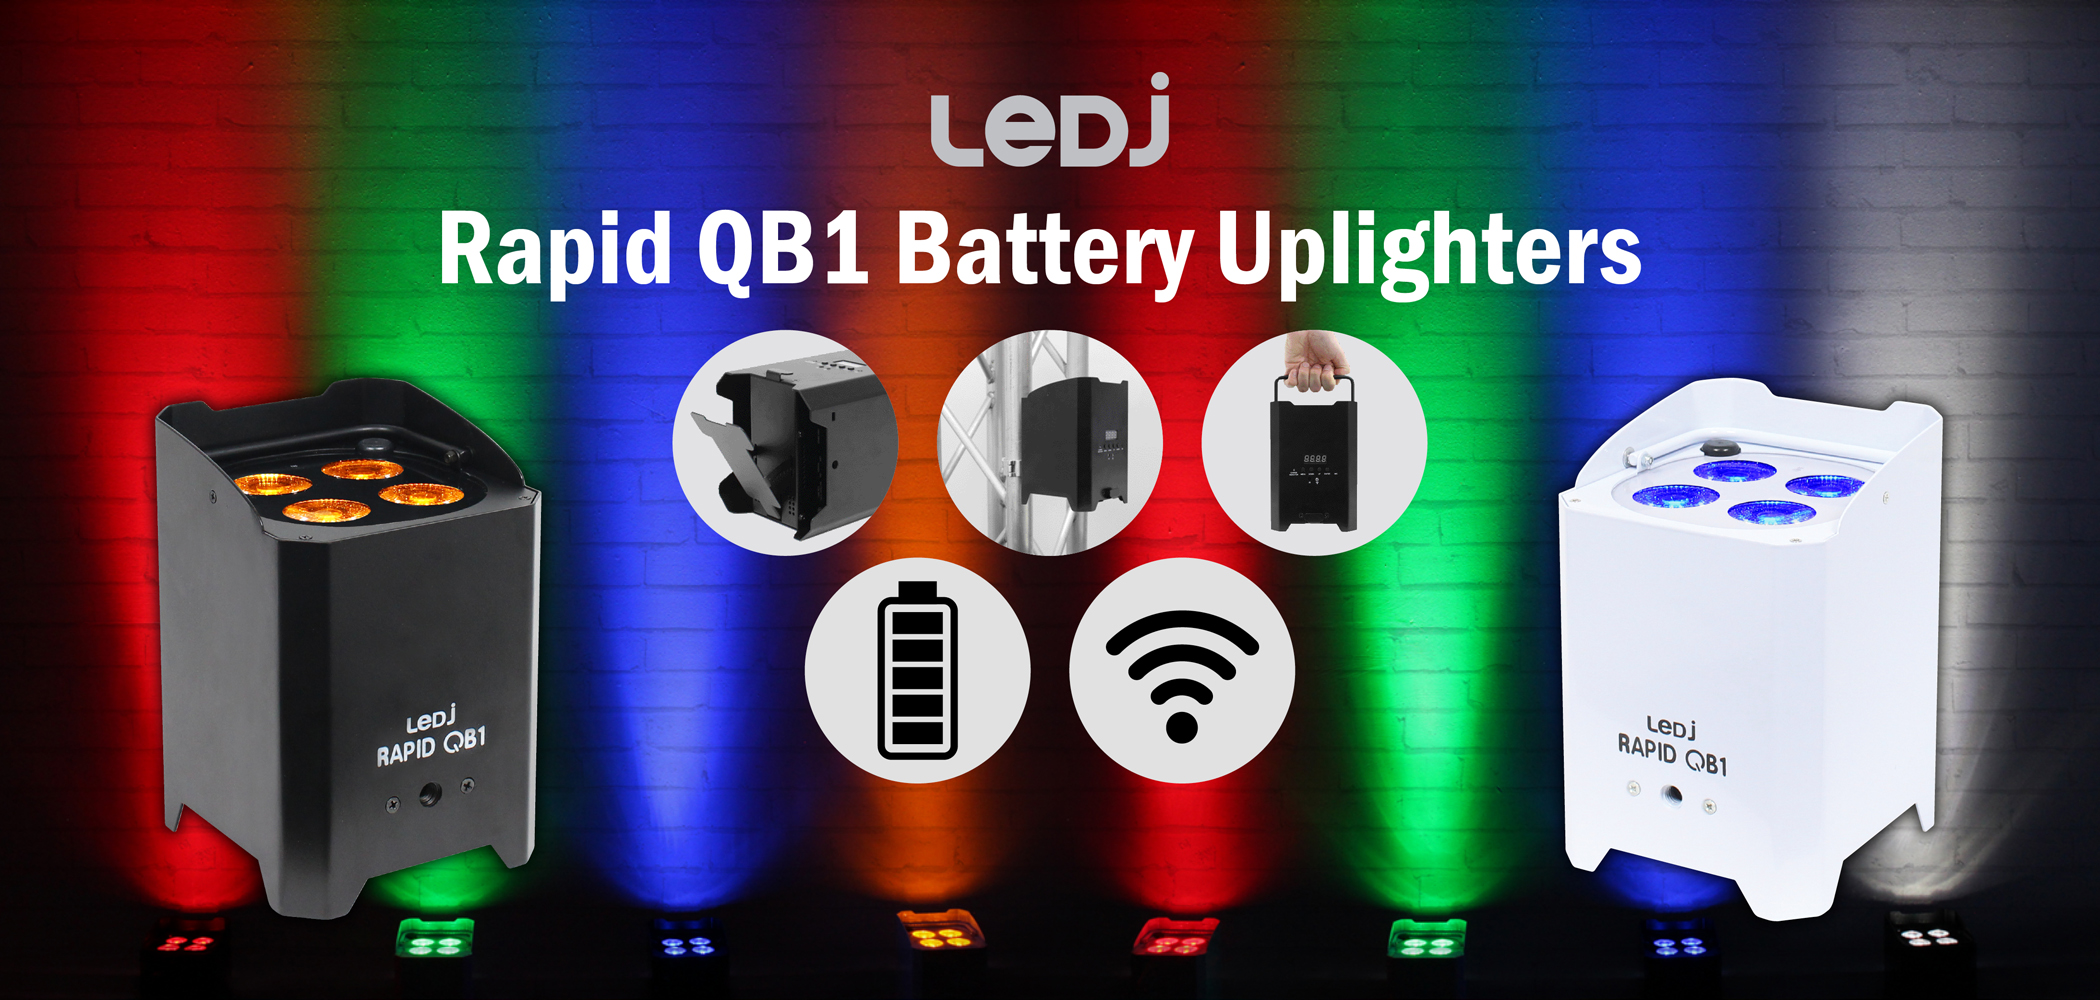 LEDJ Rapid QB1 Battery Uplighters